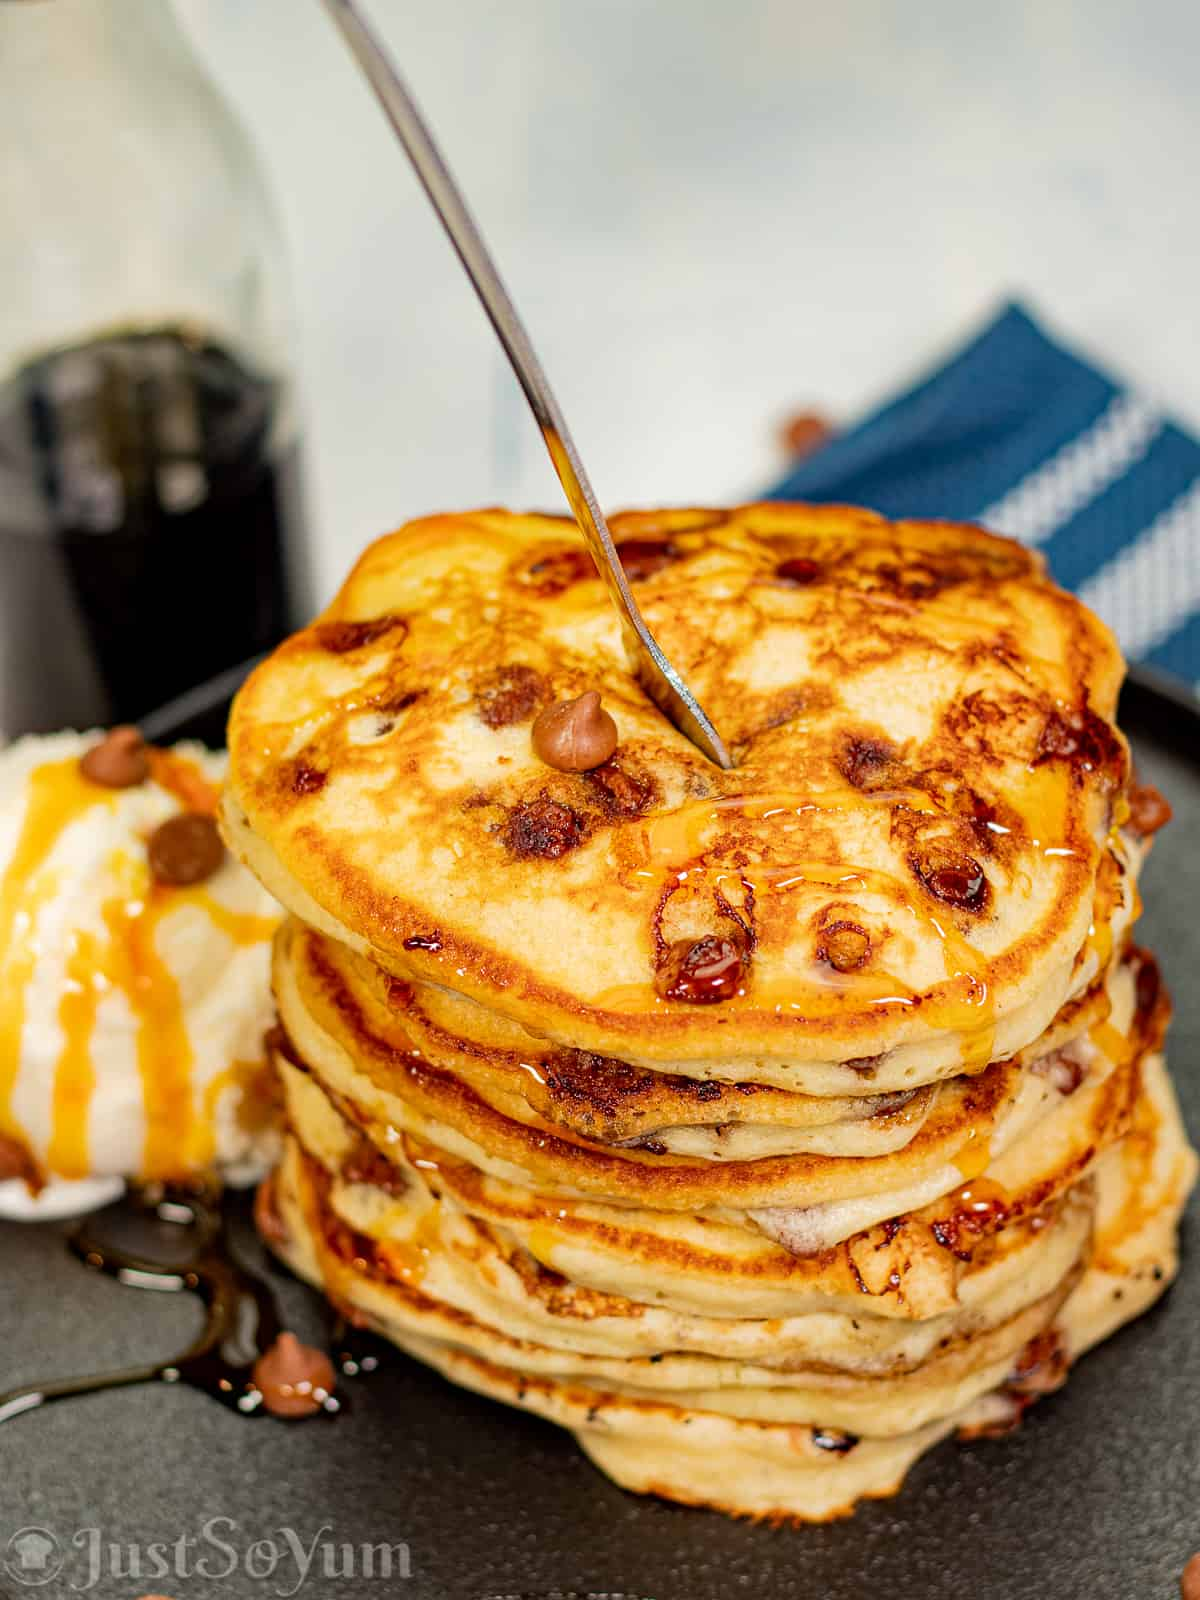 post-featured-image-for-chocolate-chip-pancakes-with-maple-syrup